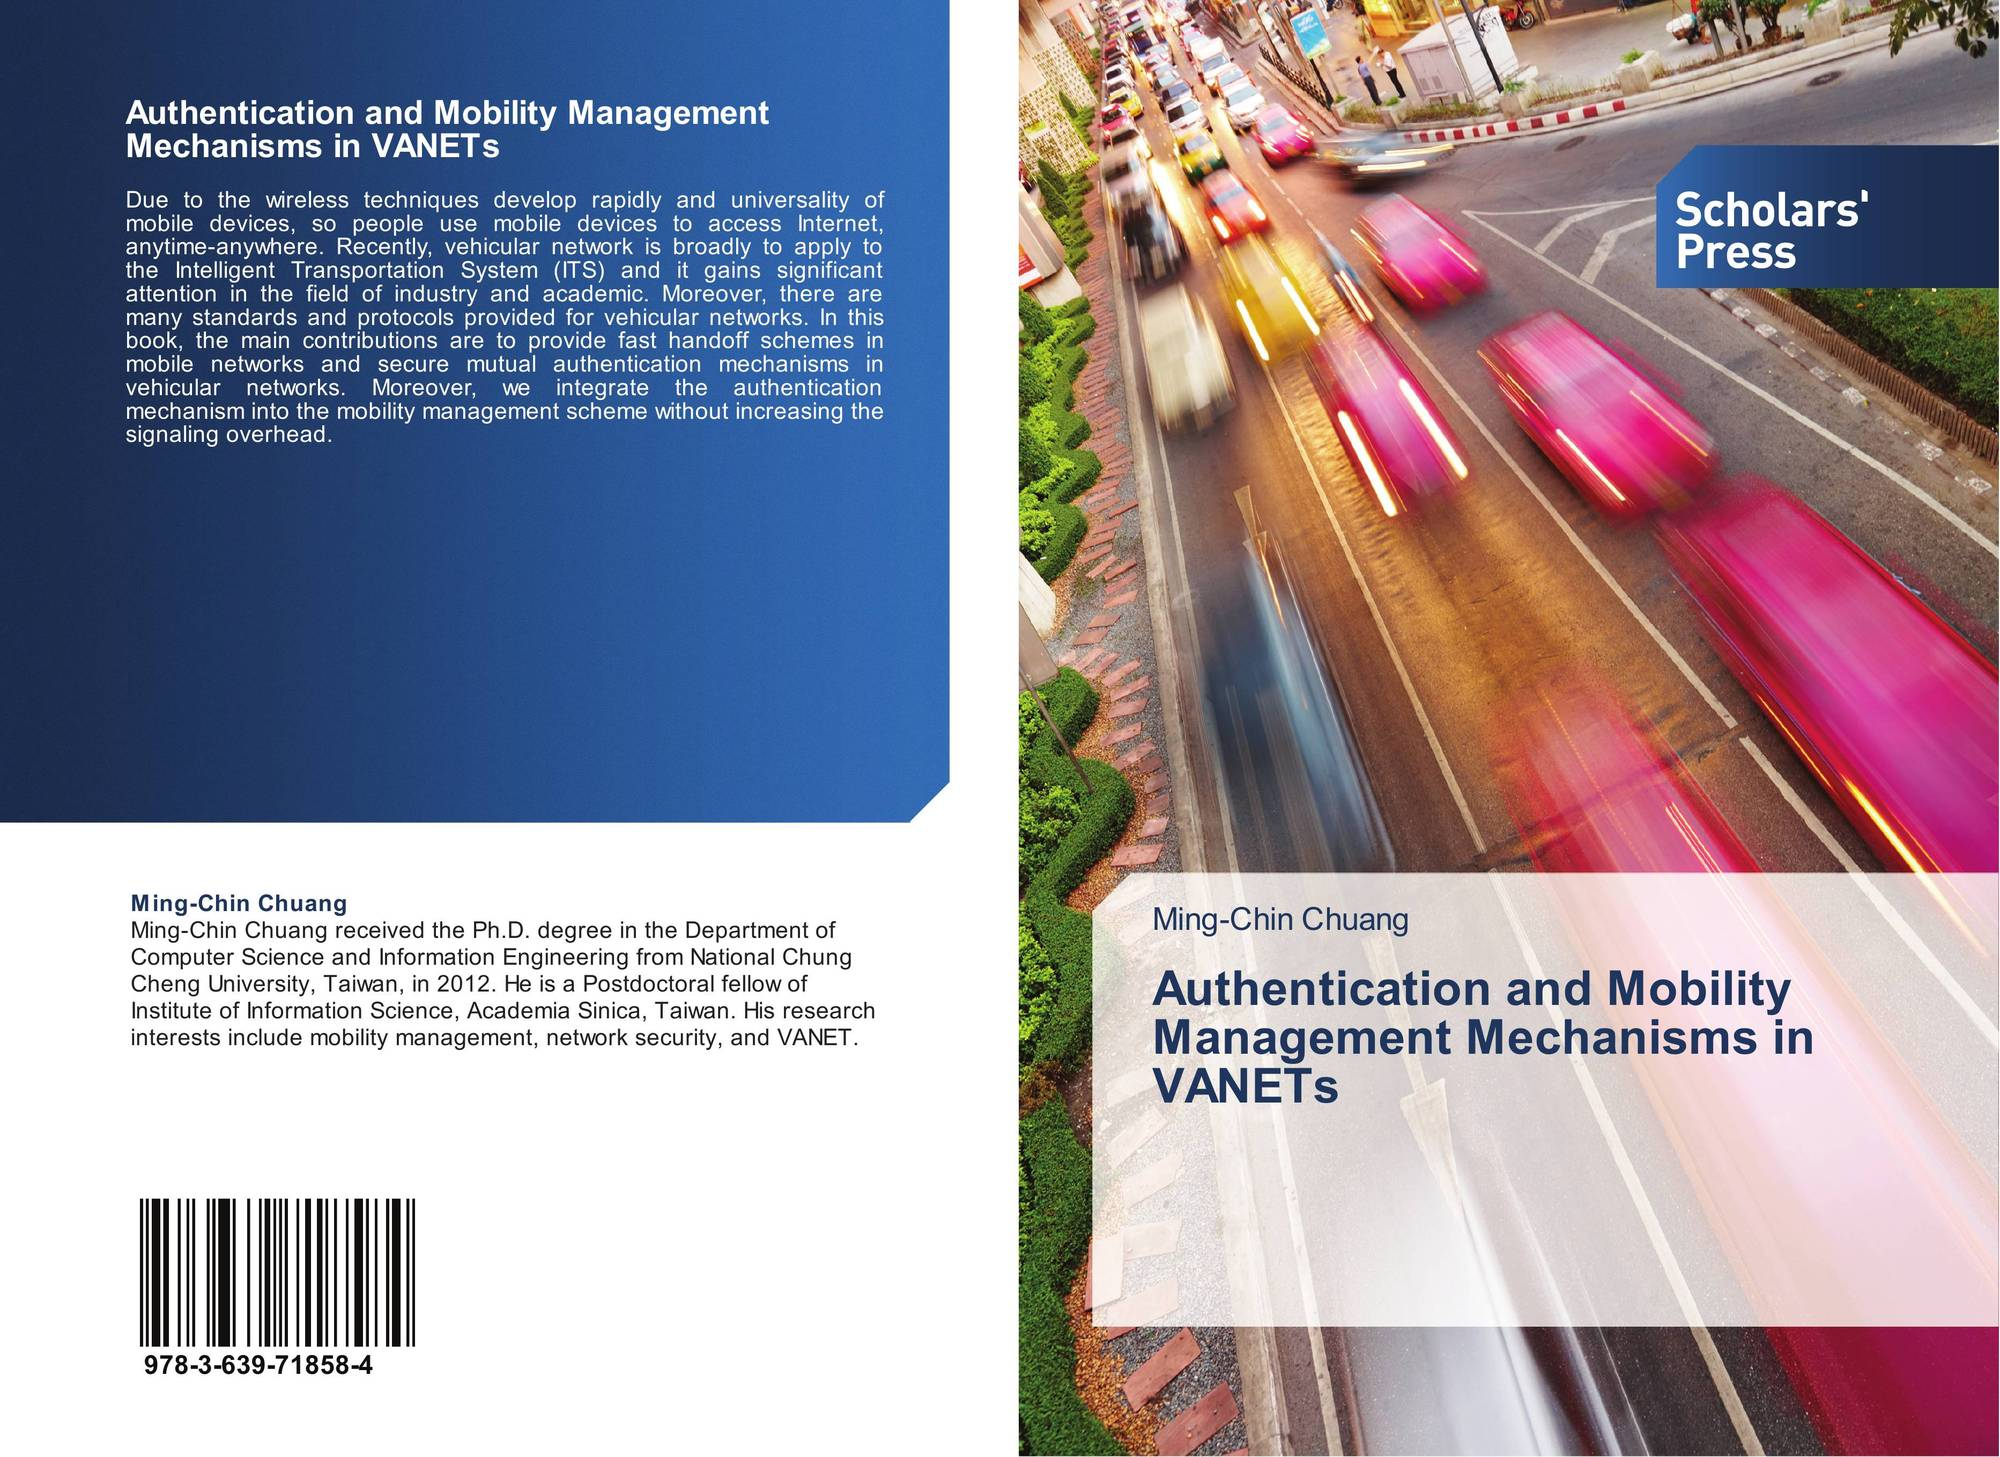 Authentication and Mobility Management Mechanisms in VANETs, 978-3